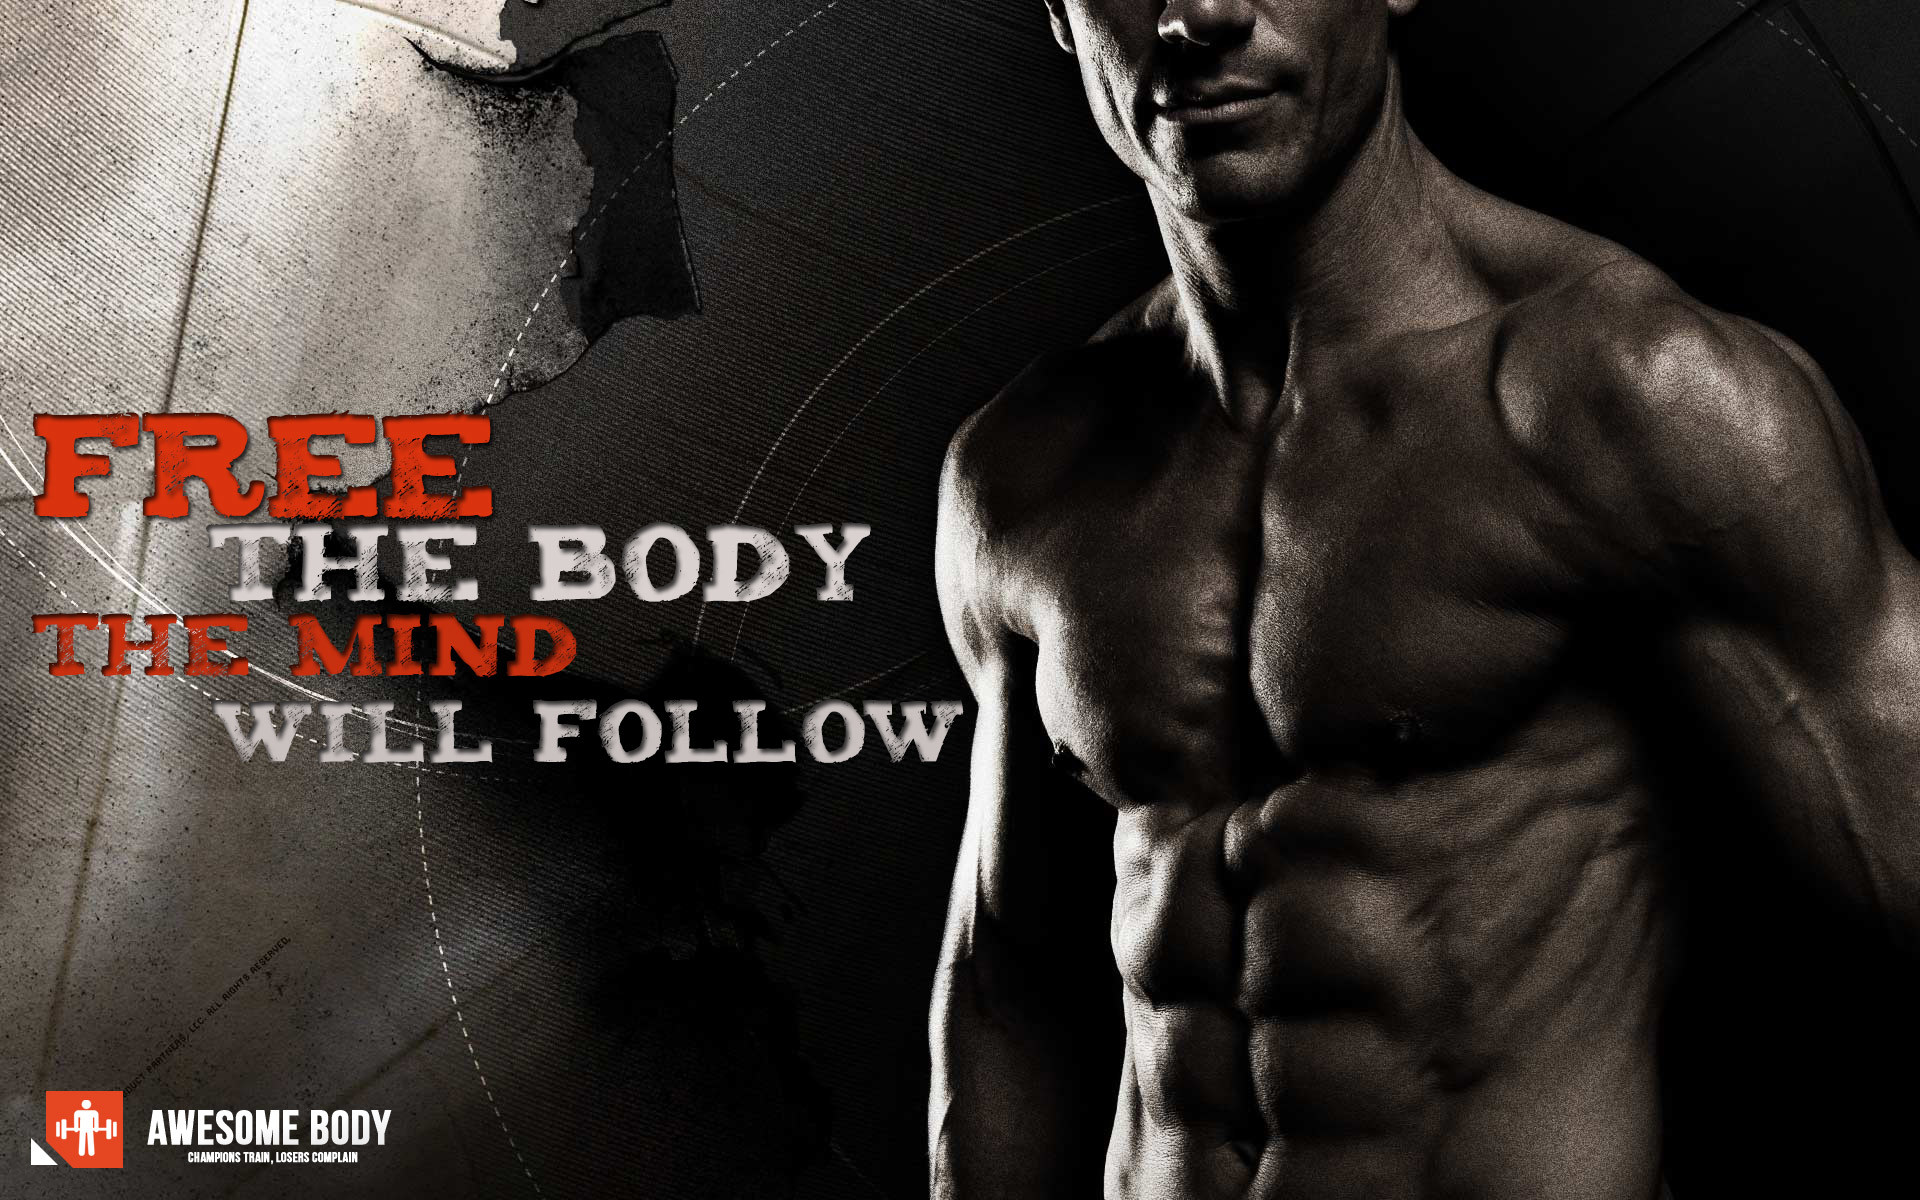 Exceptional 1920x1280 Hit The Gym Motivational Wallpaper For Mobile Quotationwalls